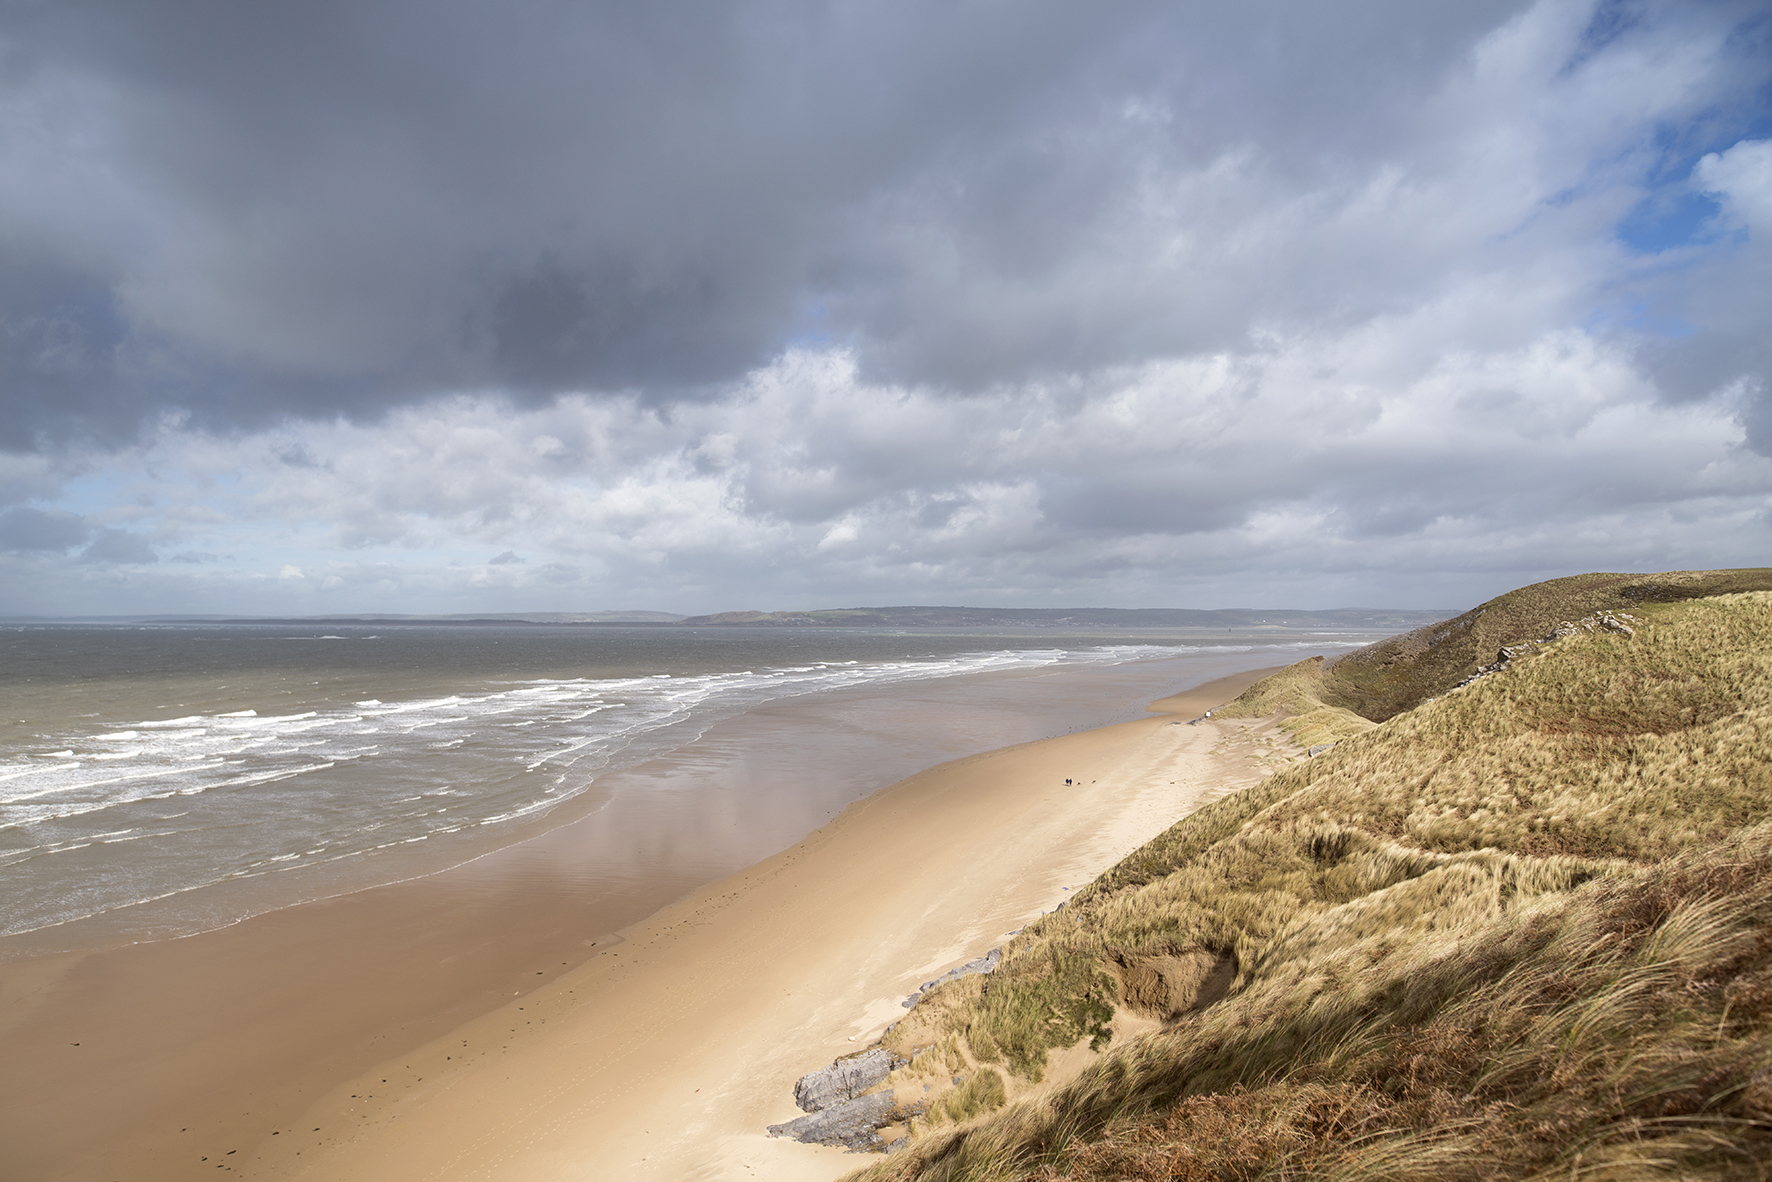 Gower beauty - one of our spots for an upcoming wedding couple!